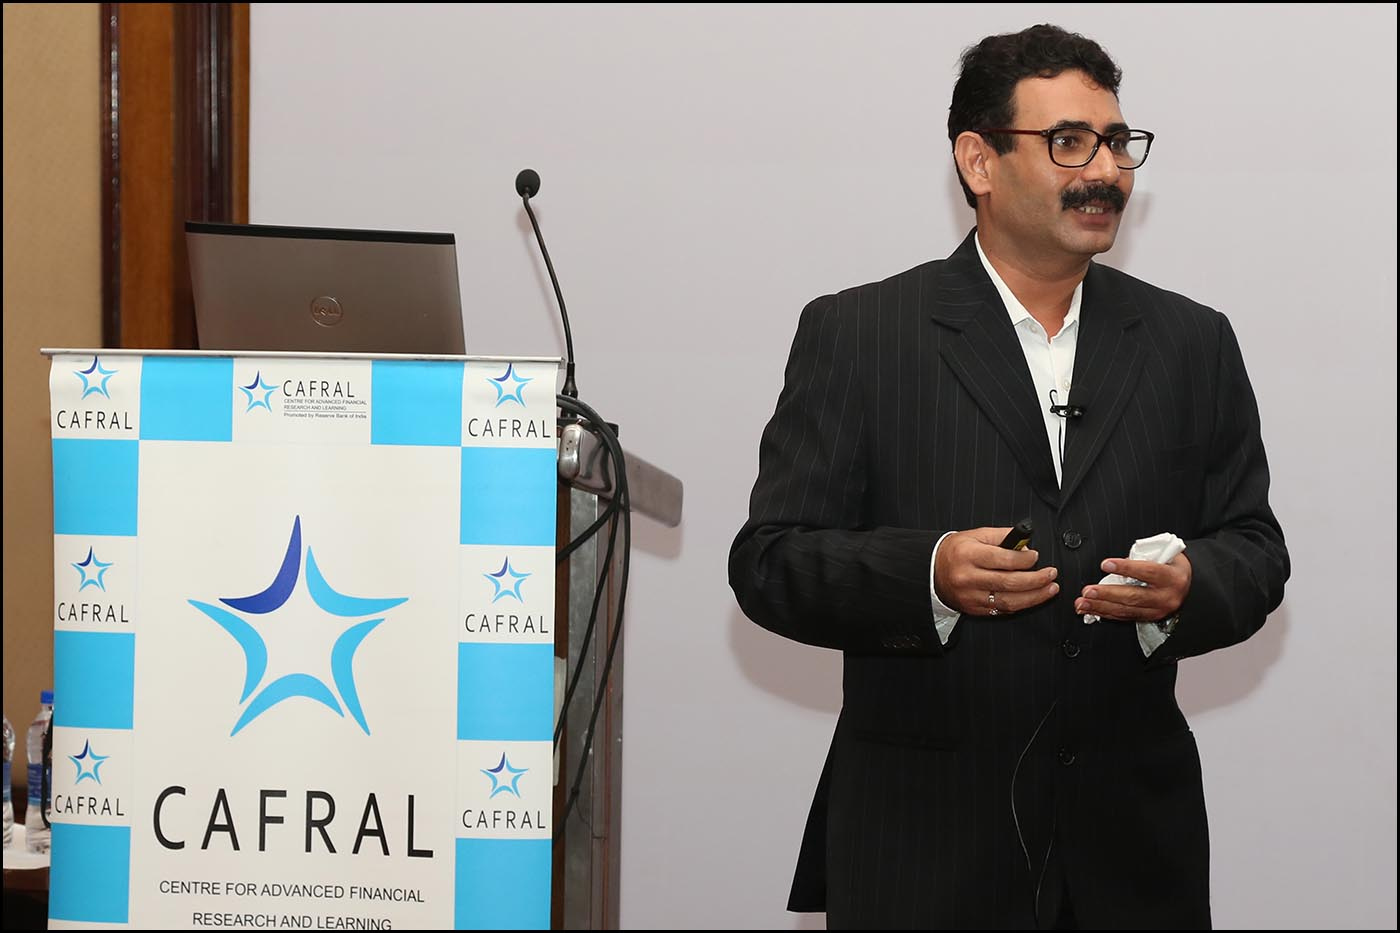 Sumnesh Joshi, Assistant Director General, UIDAI, Regional Office Government of India, New Delhi